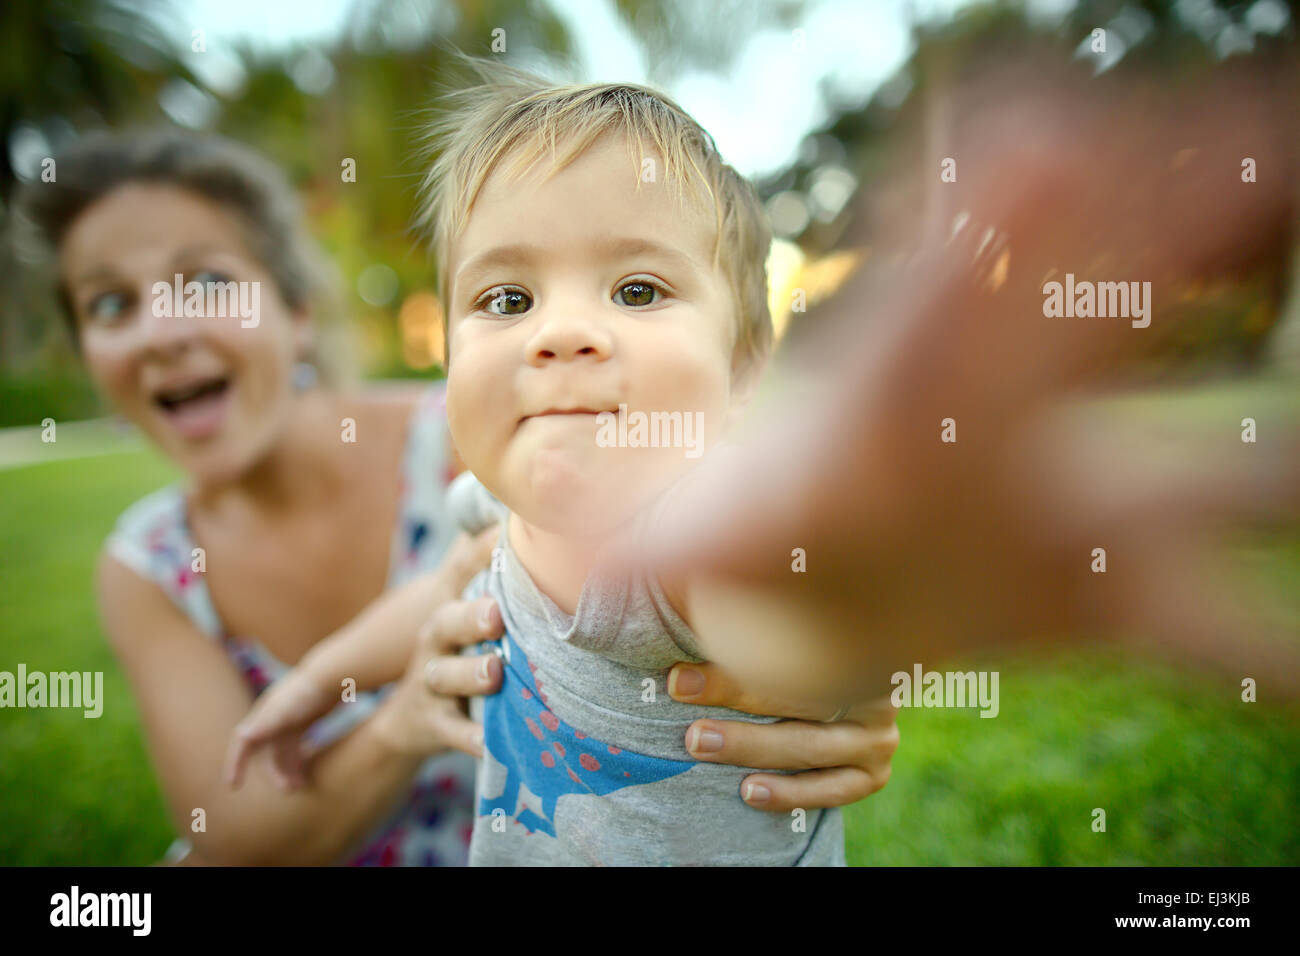 Mom and son - Stock Image